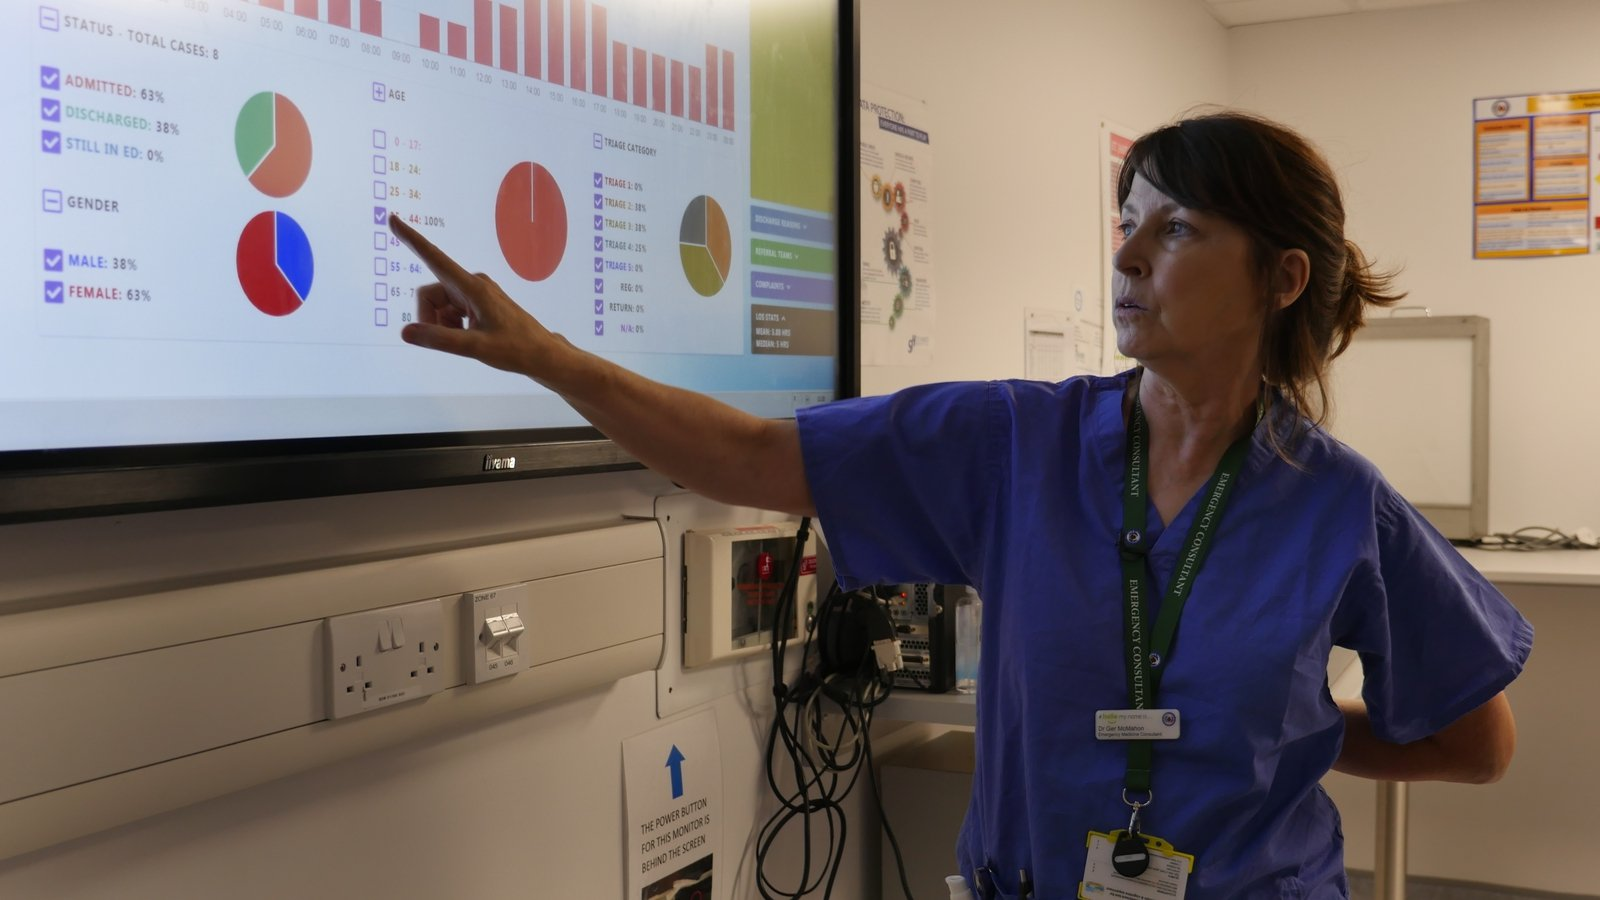 Image - Prof Geraldine McMahon, reviewing live patient data on the hospital dashboard